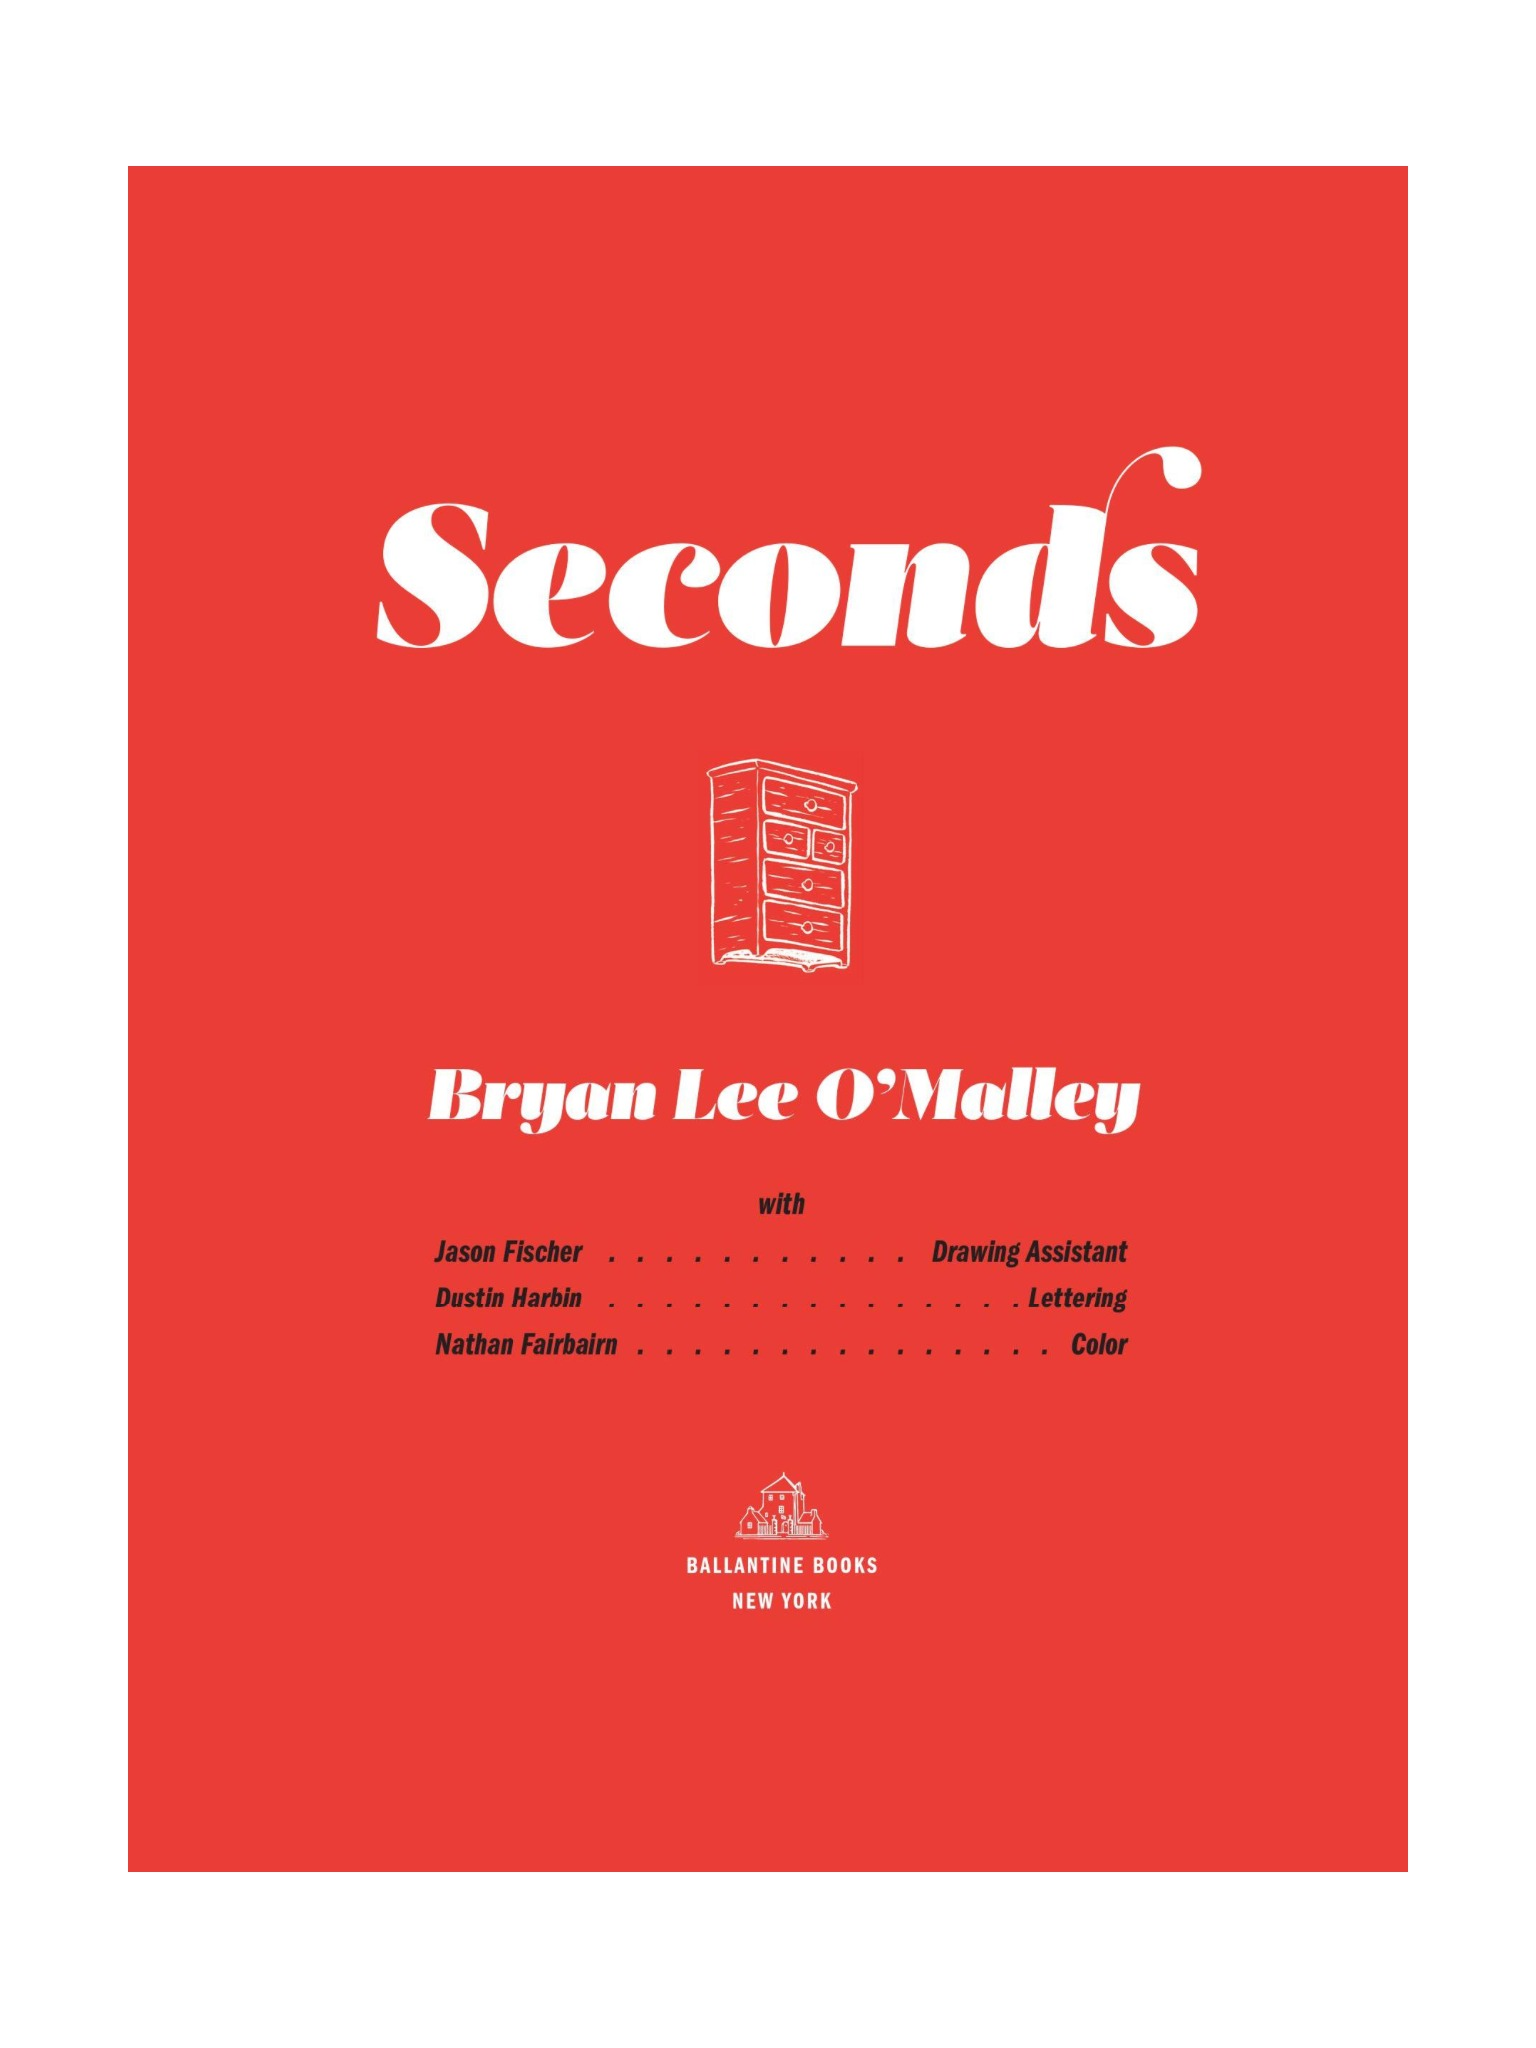 Read online Seconds comic -  Issue # Full - 4